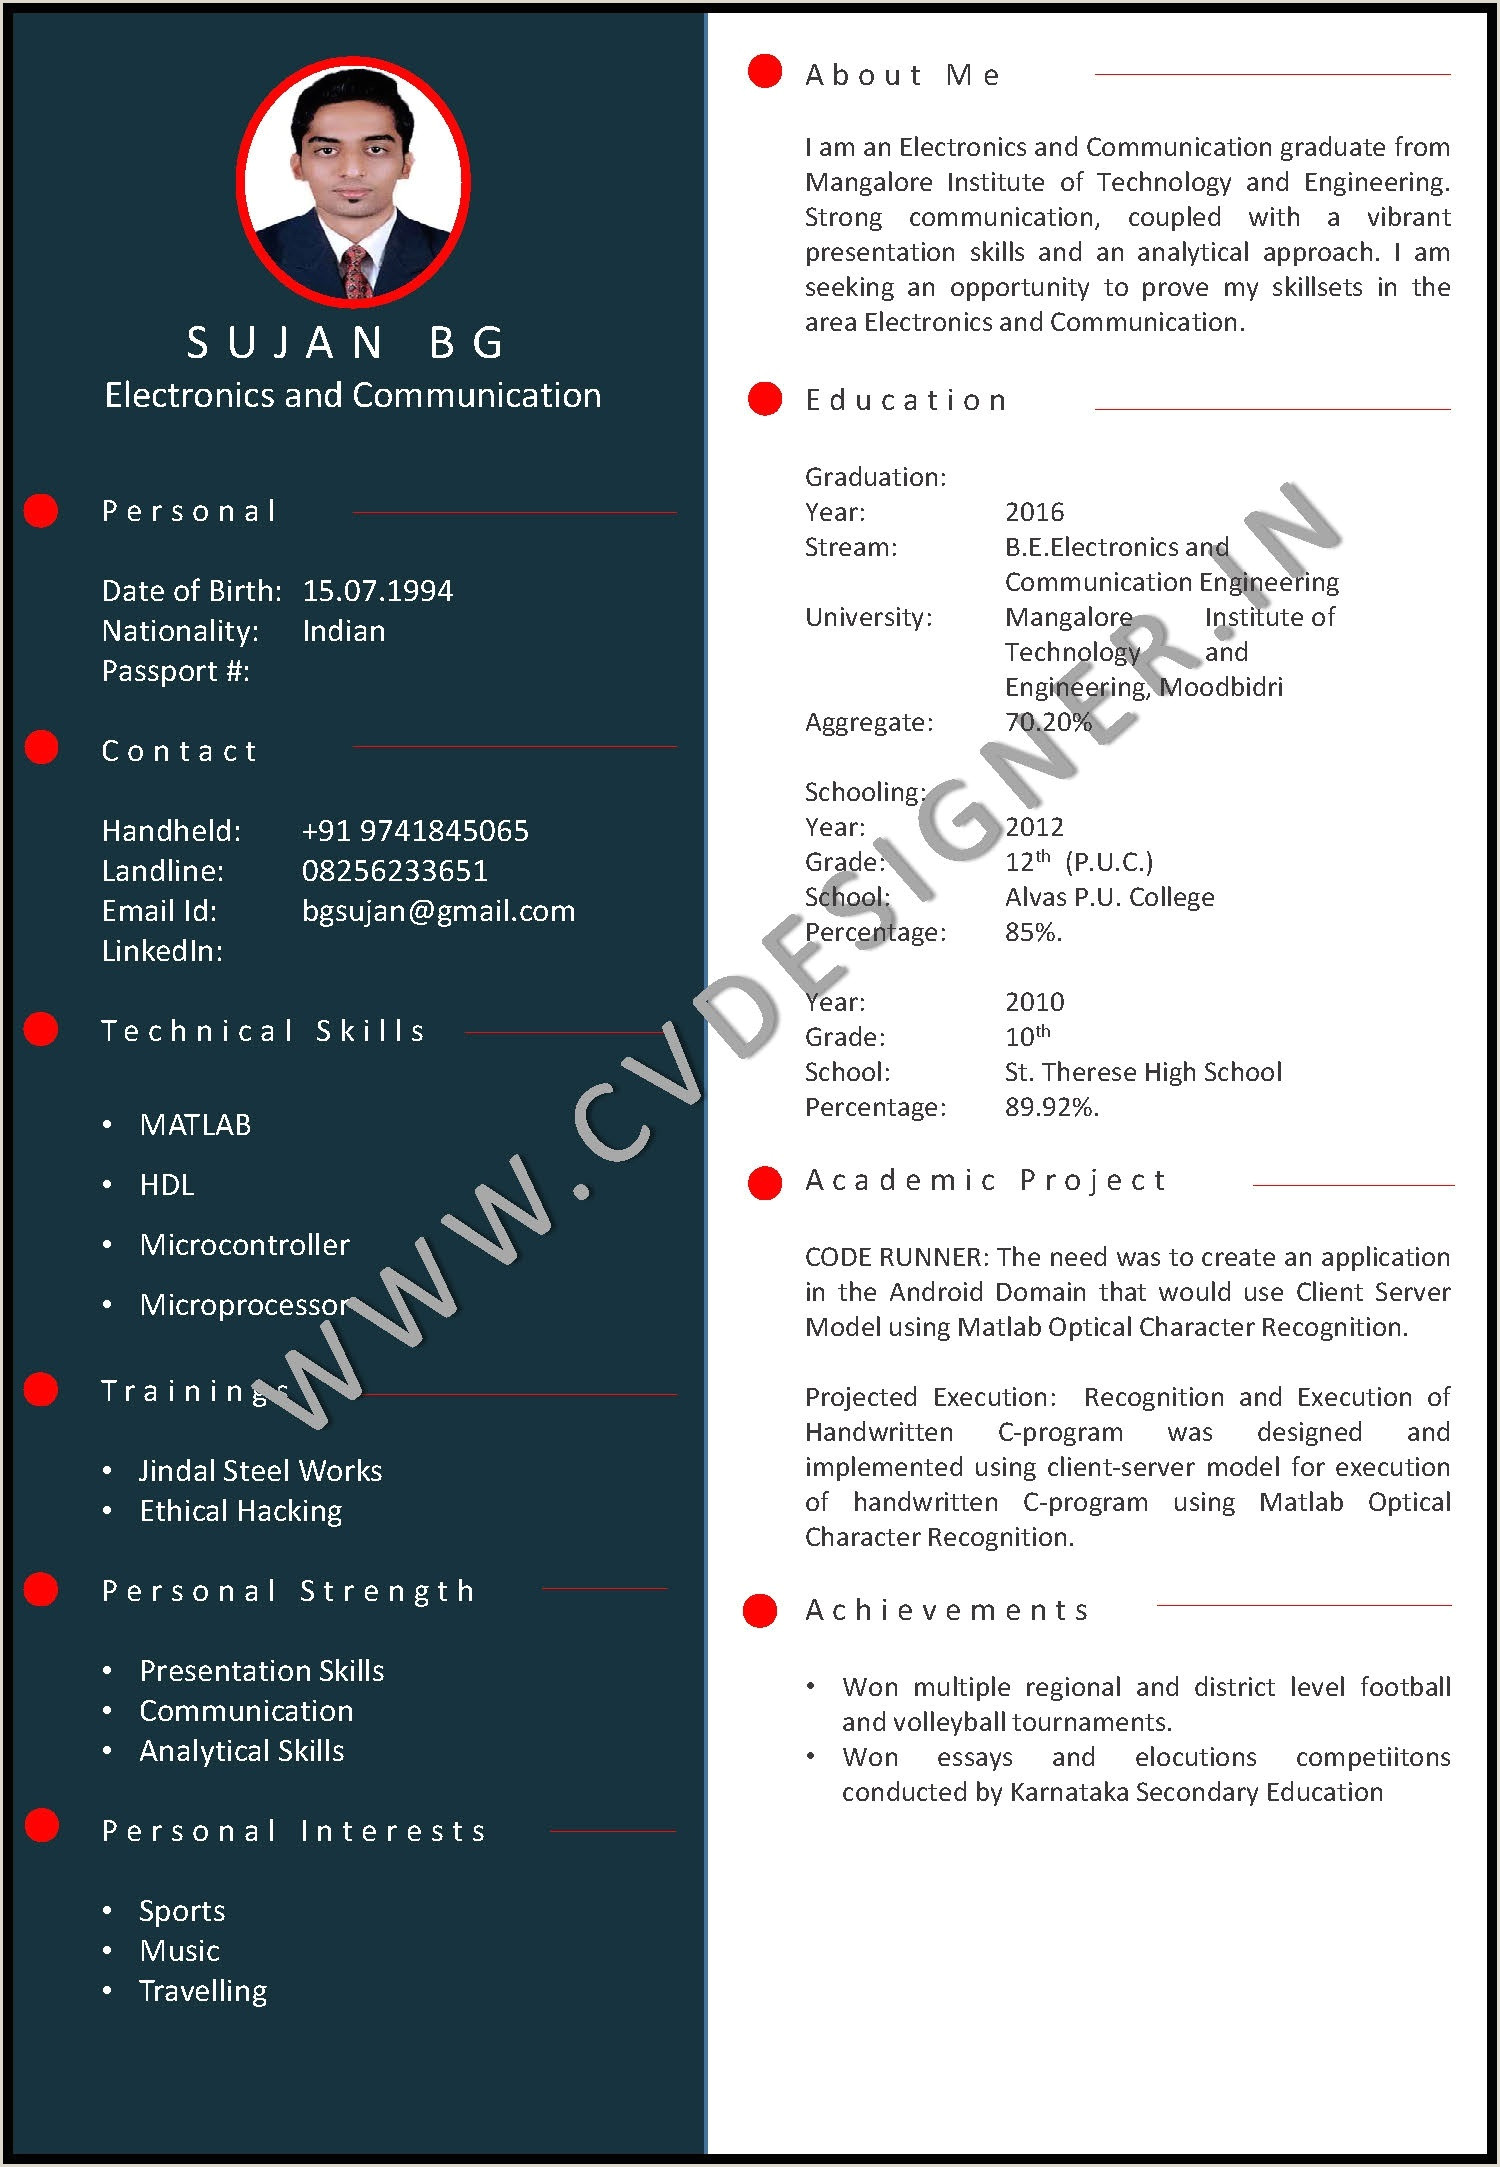 Mba Fresher Cv Format Doc How To Make A Good Resume As A Fresher Quora